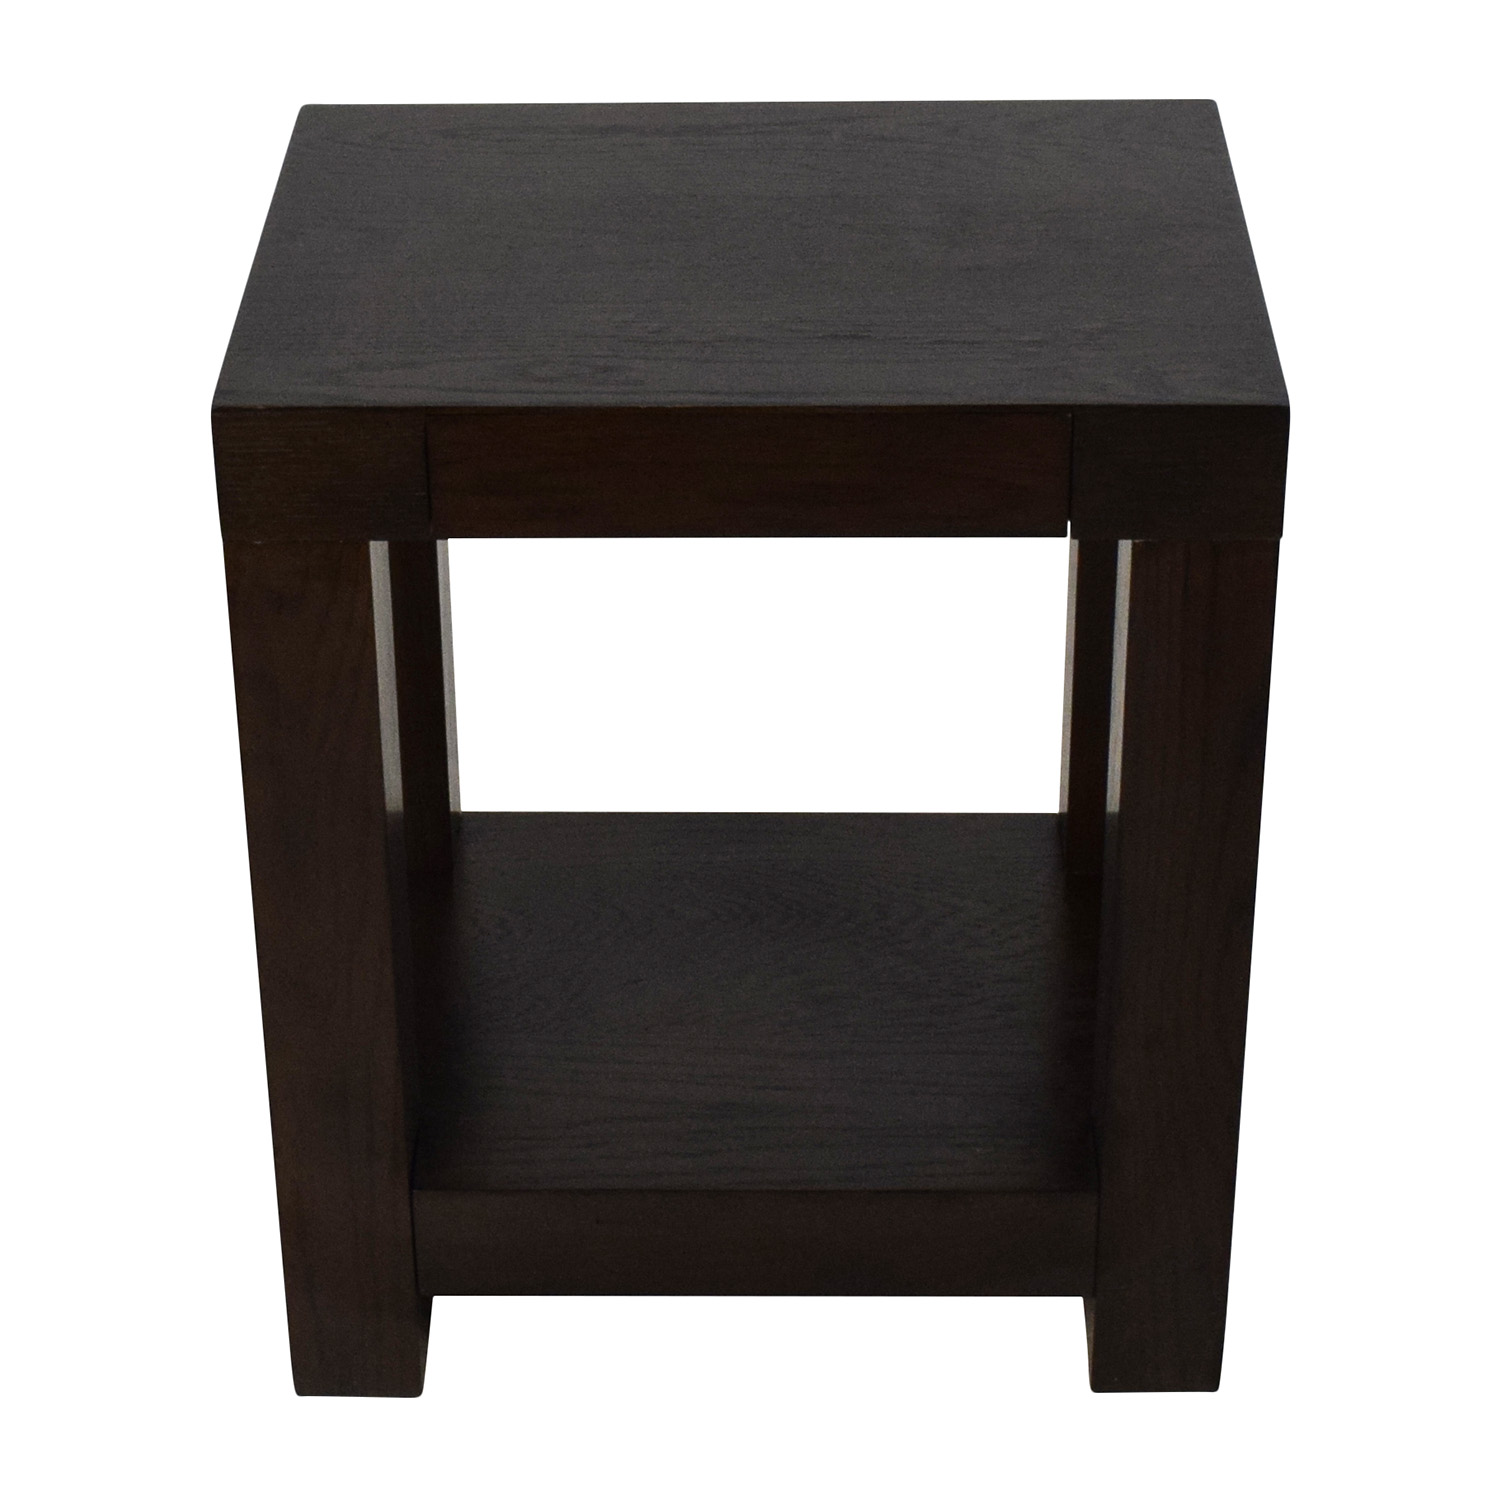 off west elm parsons end table tables used accent side with drawer pottery barn target kitchen oversized sectionals furniture toronto ellipsis tiffany lights half wall slim pub